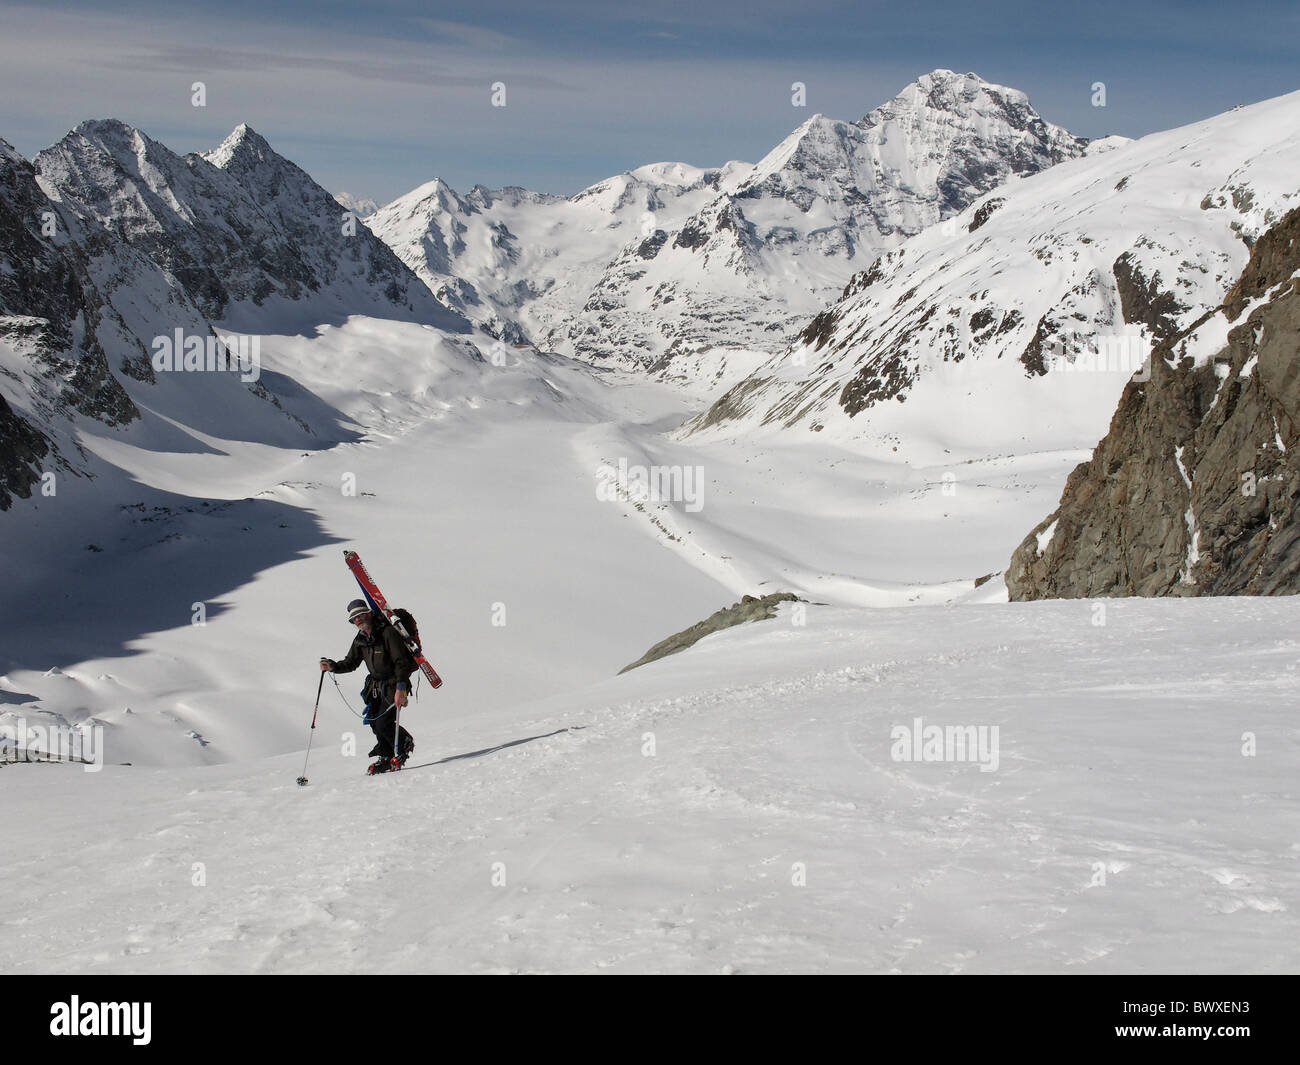 A ski tourer walking up the steeper section at the side of the Brenay icefall, on the Brenay Glacier, Switzerland - Stock Image